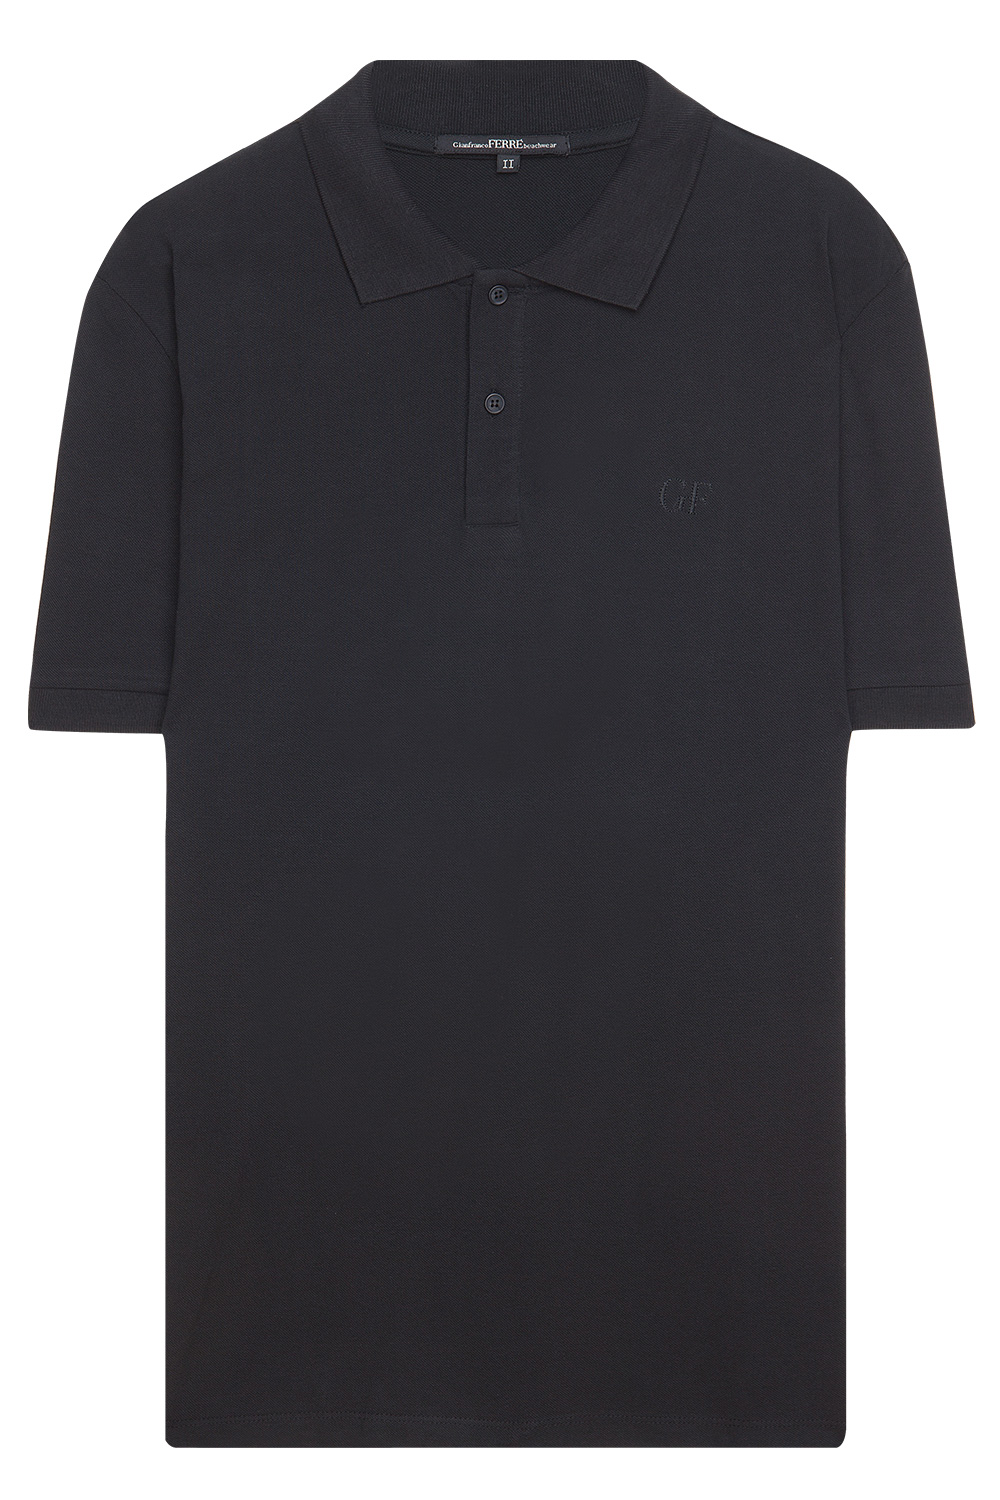 Gianfranco ferre polo t shirt black 365ist for Black polo shirt images